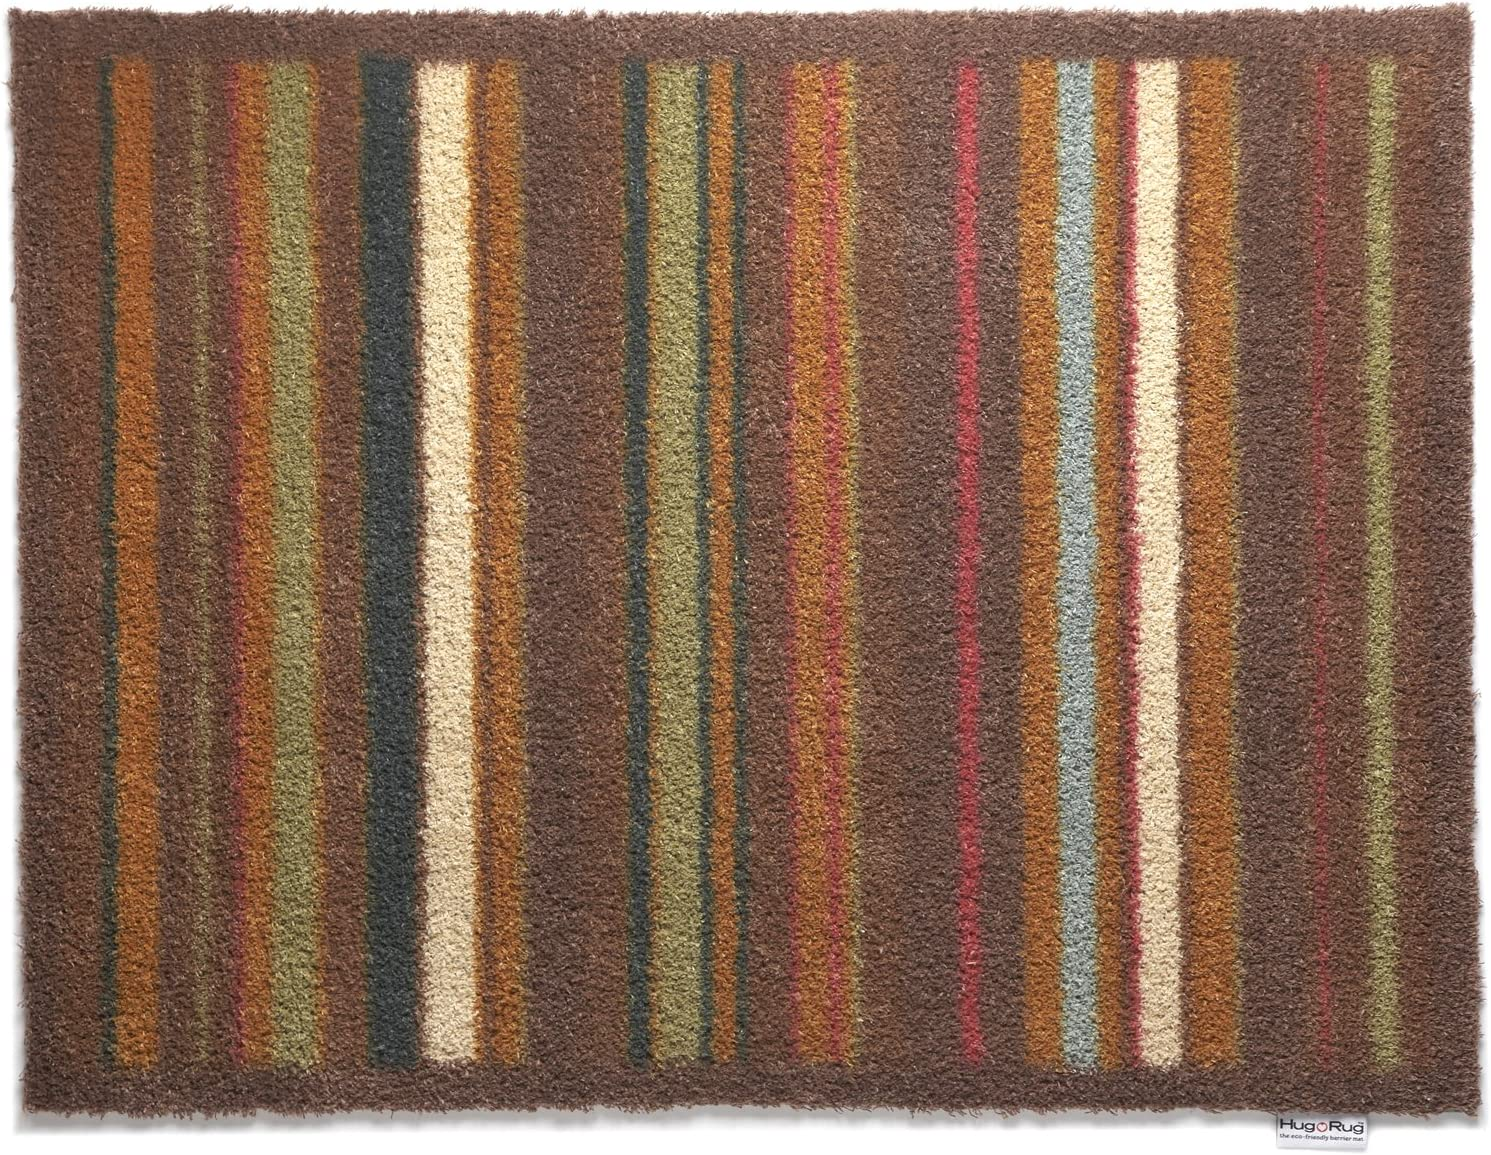 Bosmere Hug Rug Eco-Friendly Absorbent Dirt Trapping Indoor Washable Mat, 25.5